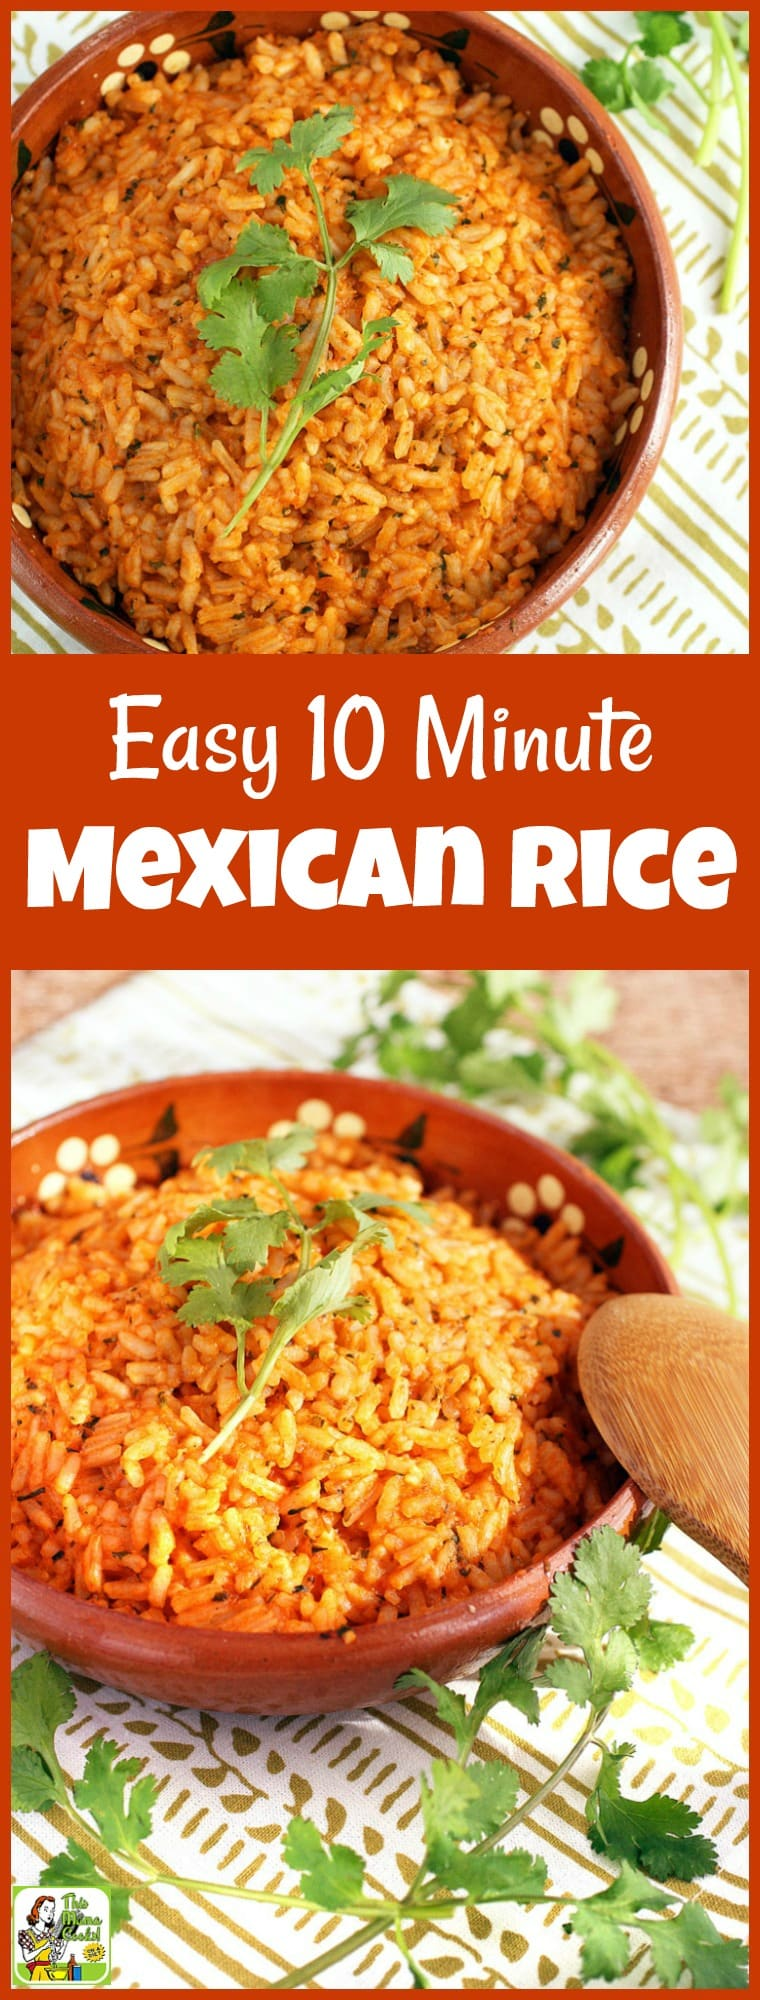 It\'s not taco night unless you have Mexican restaurant style rice. It\'s so simple to prepare if you have this Easy 10 Minute Mexican Rice recipe! Can be made gluten free and vegetarian, too! #recipes #recipeoftheday #healthyrecipes #easyrecipe #easyrecipe #mexicanfoodrecipes #ricerecipes #vegetarian #copycatrecipes #mexicanrice #mexicanricerecipes #taconight #tacotuesdayrecipes #taconightrecipes